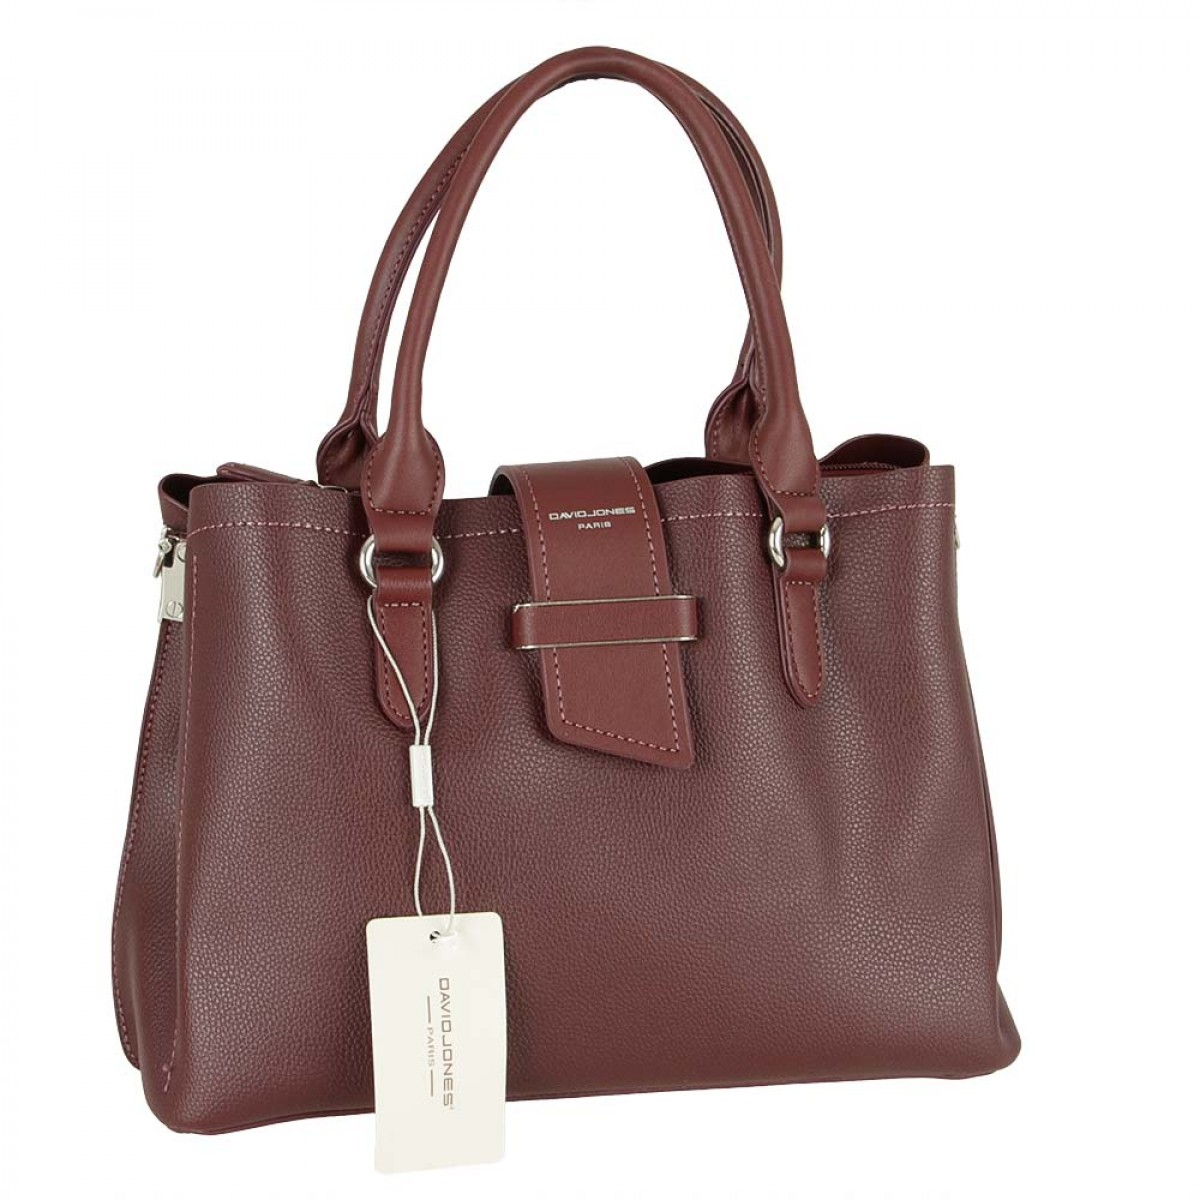 Жіноча сумка David Jones 6118-2 DARK BORDEAUX